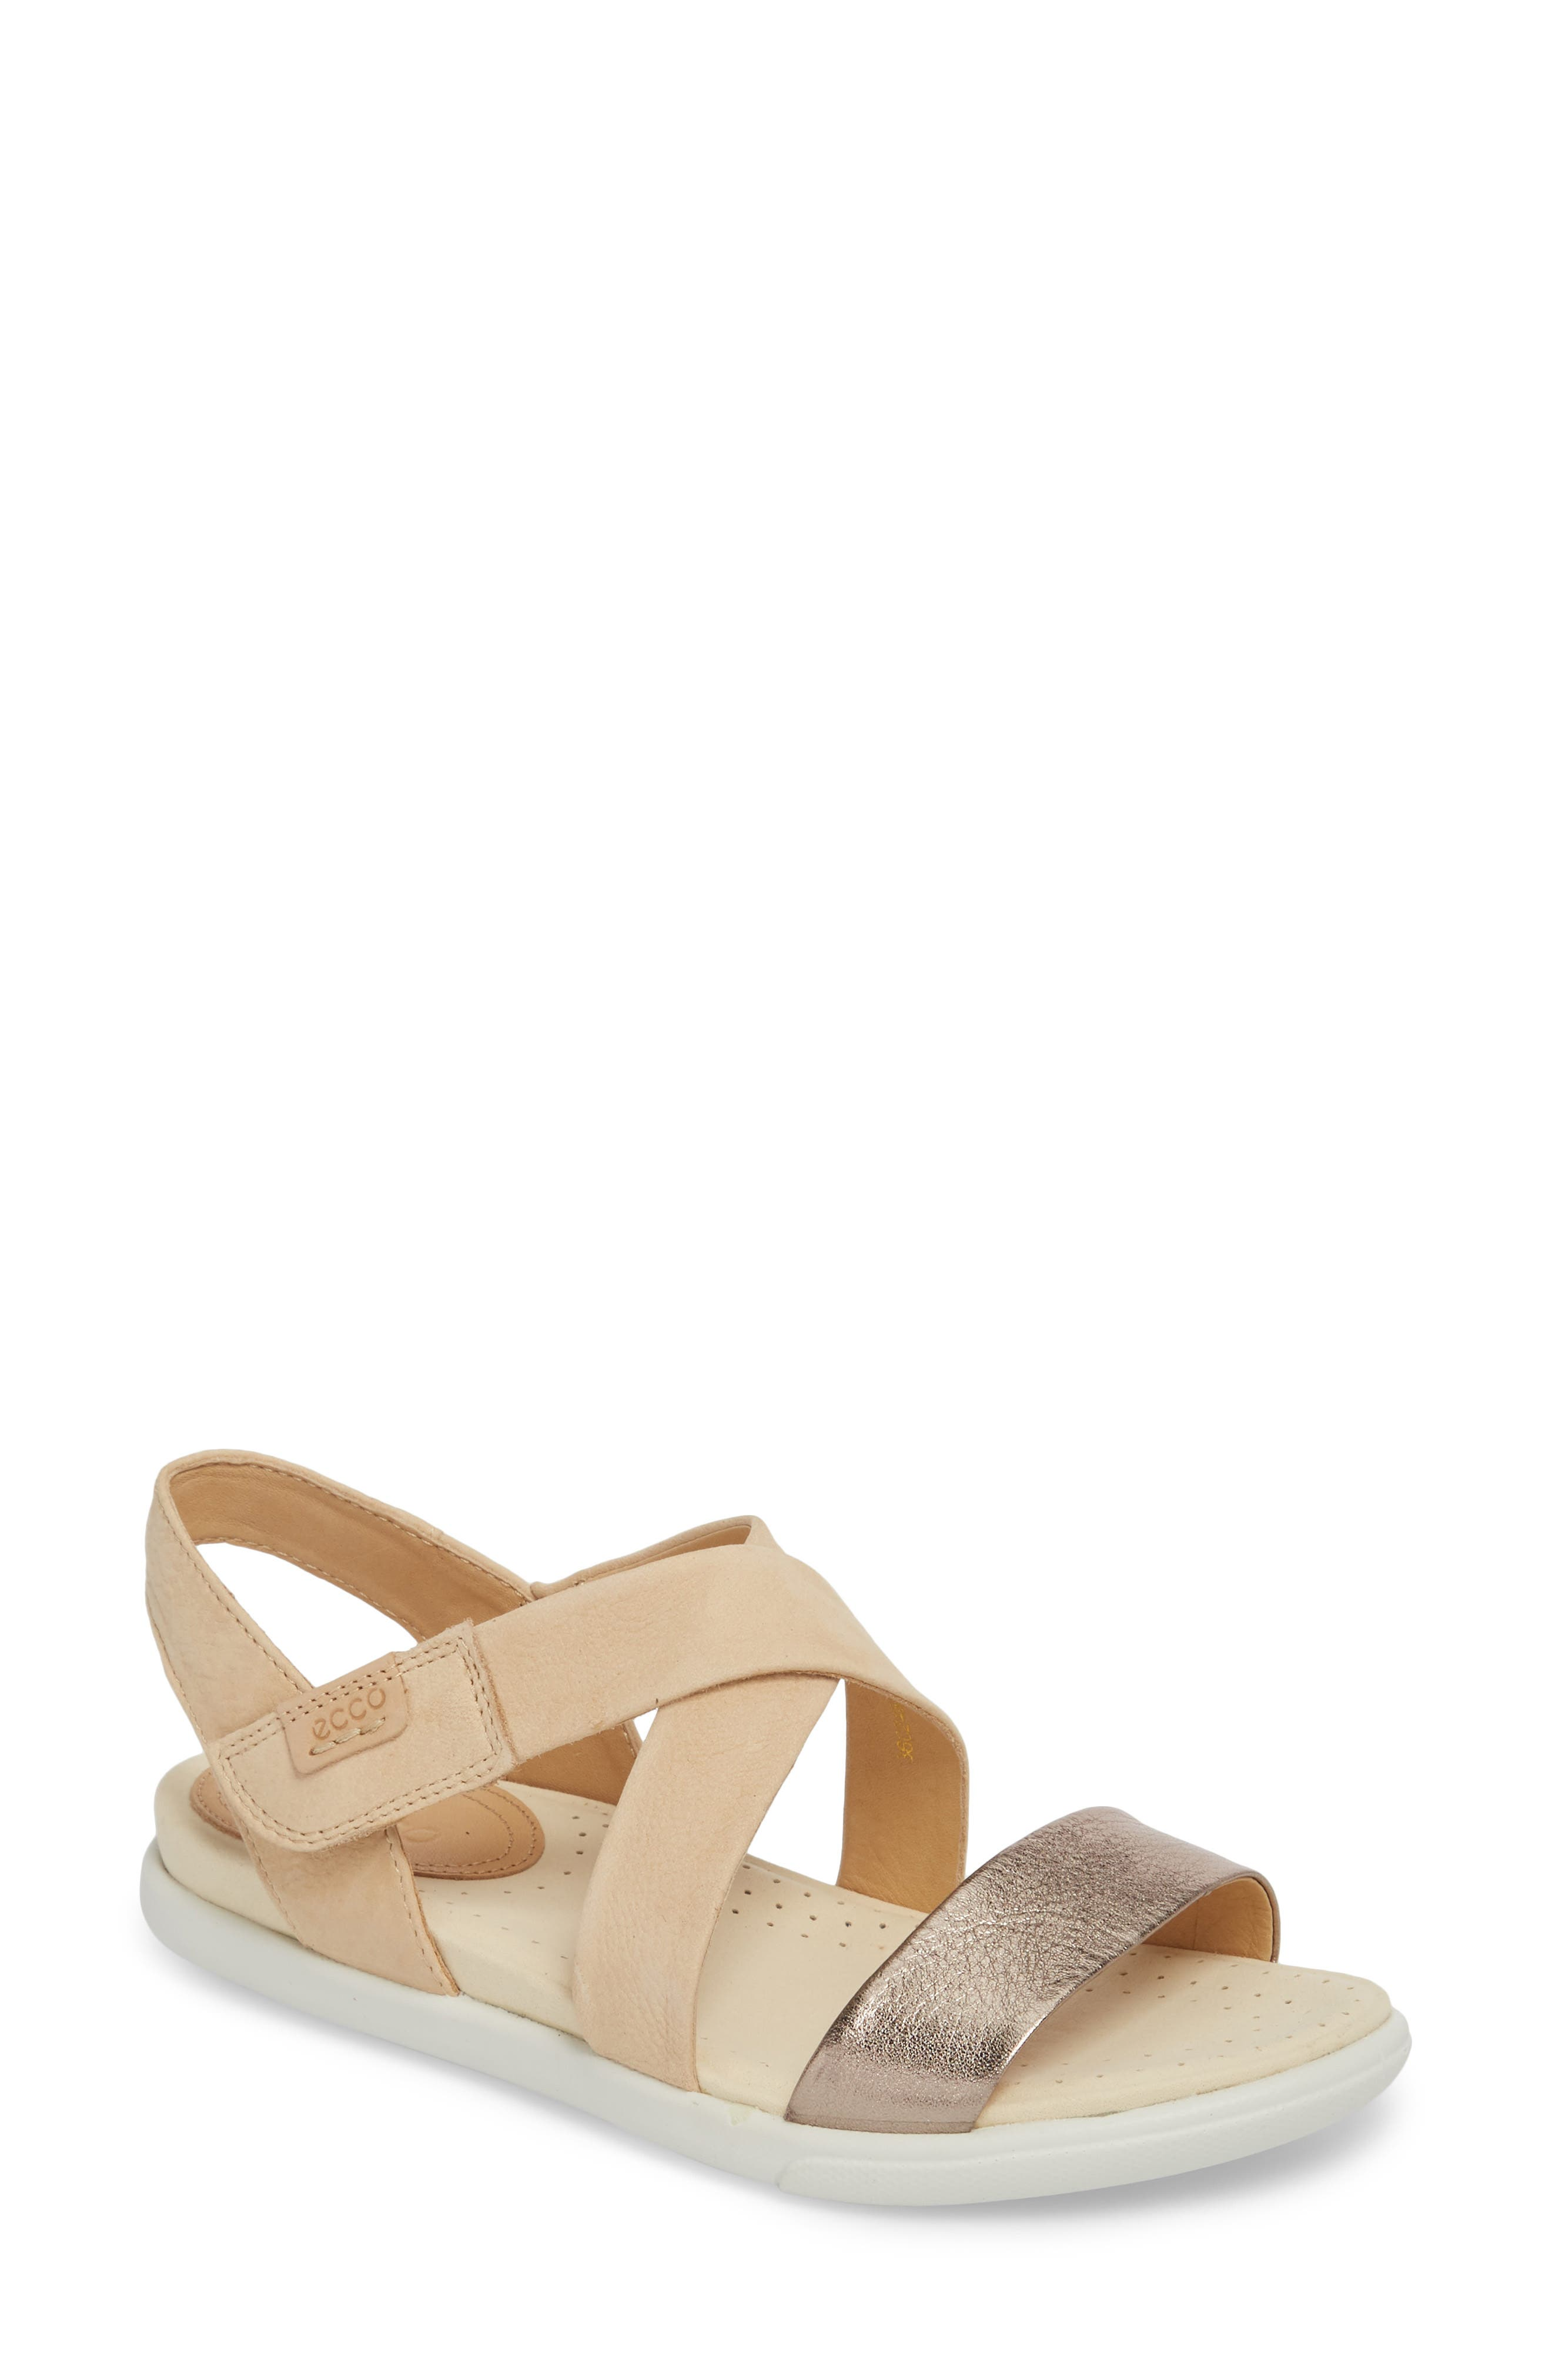 Damara Cross-Strap Sandal,                             Main thumbnail 3, color,